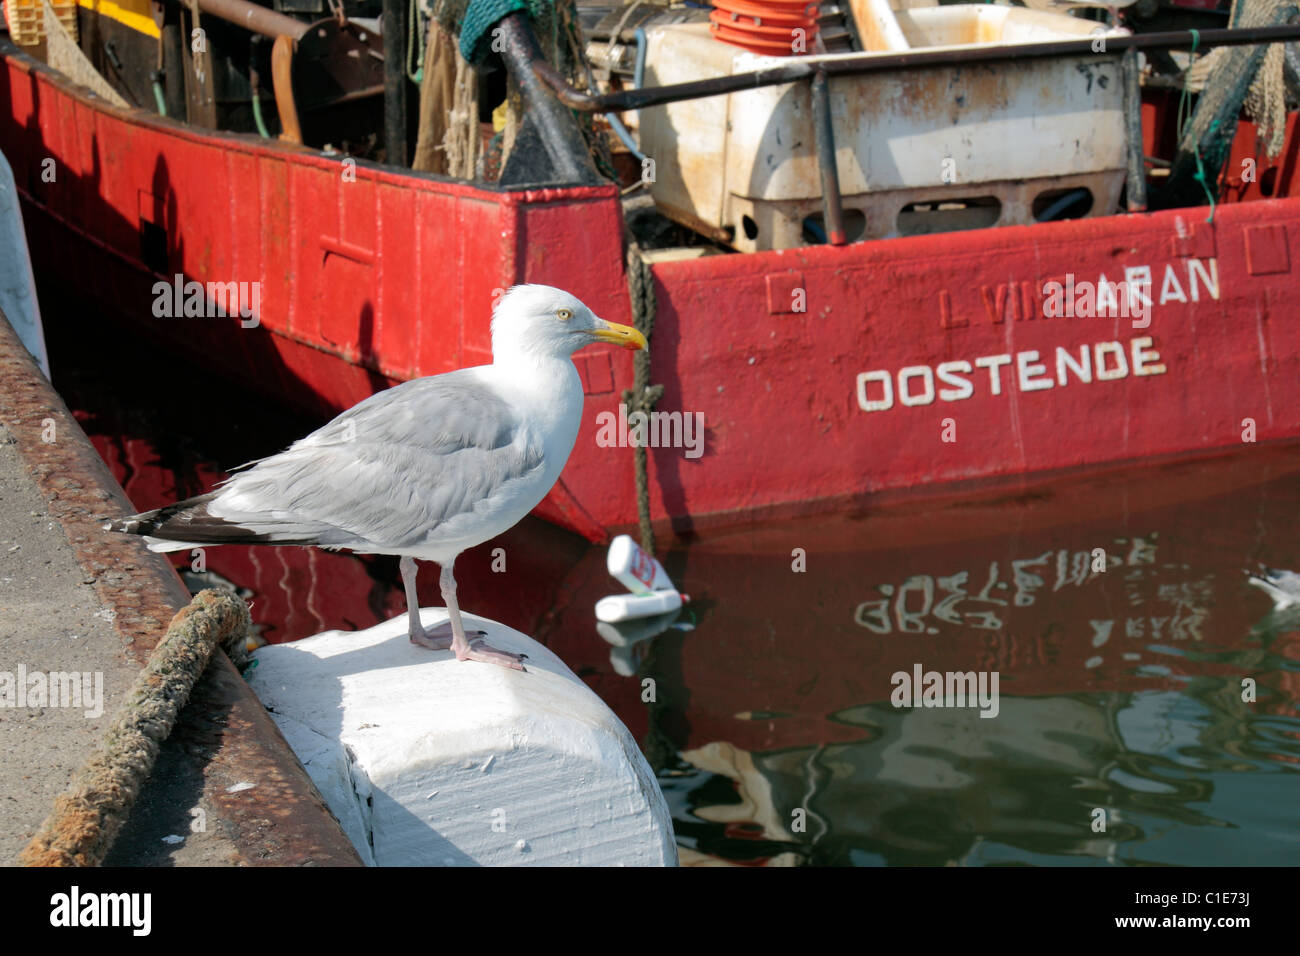 A seagull perched on a marine bollard beside a fishing bost in Ostend harbour, Belgium. Aug 2010 - Stock Image